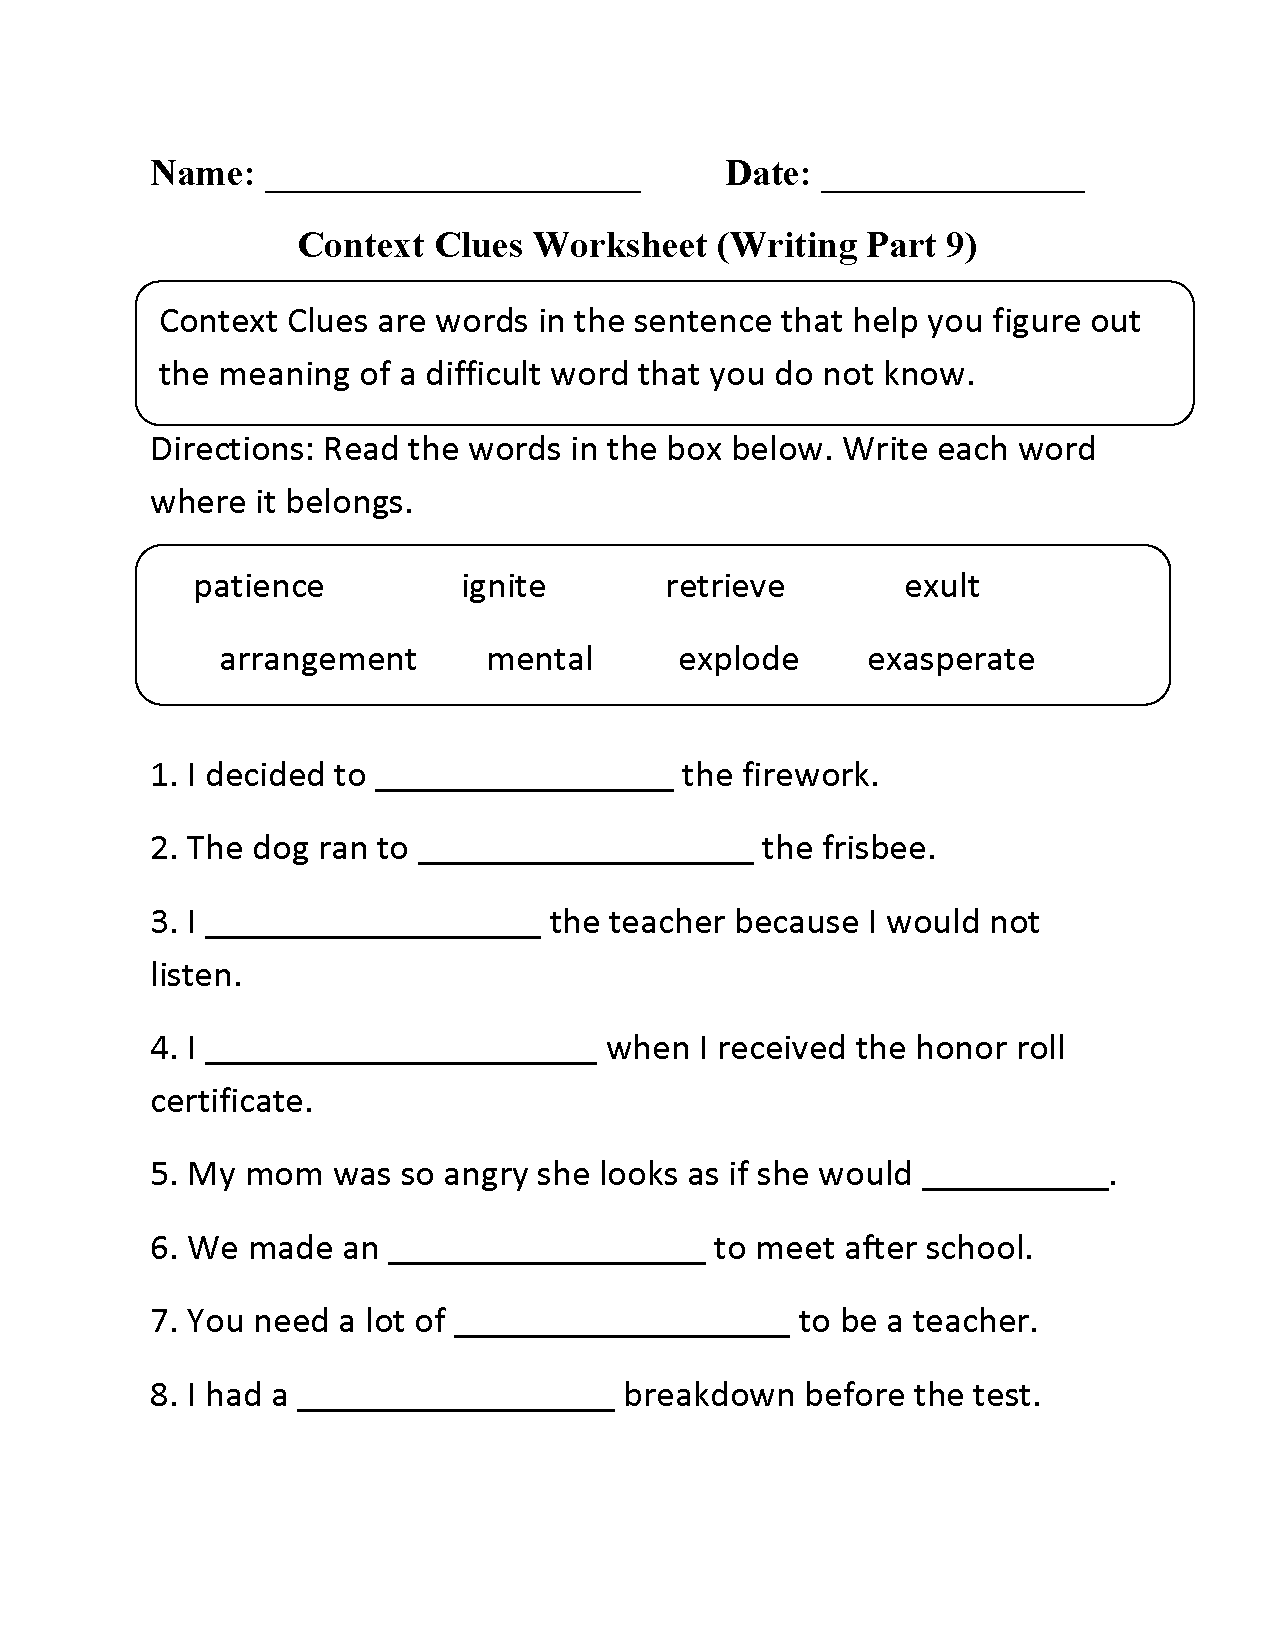 Worksheet Context Clues englishlinx com context clues worksheets worksheet writing part 9 intermediate